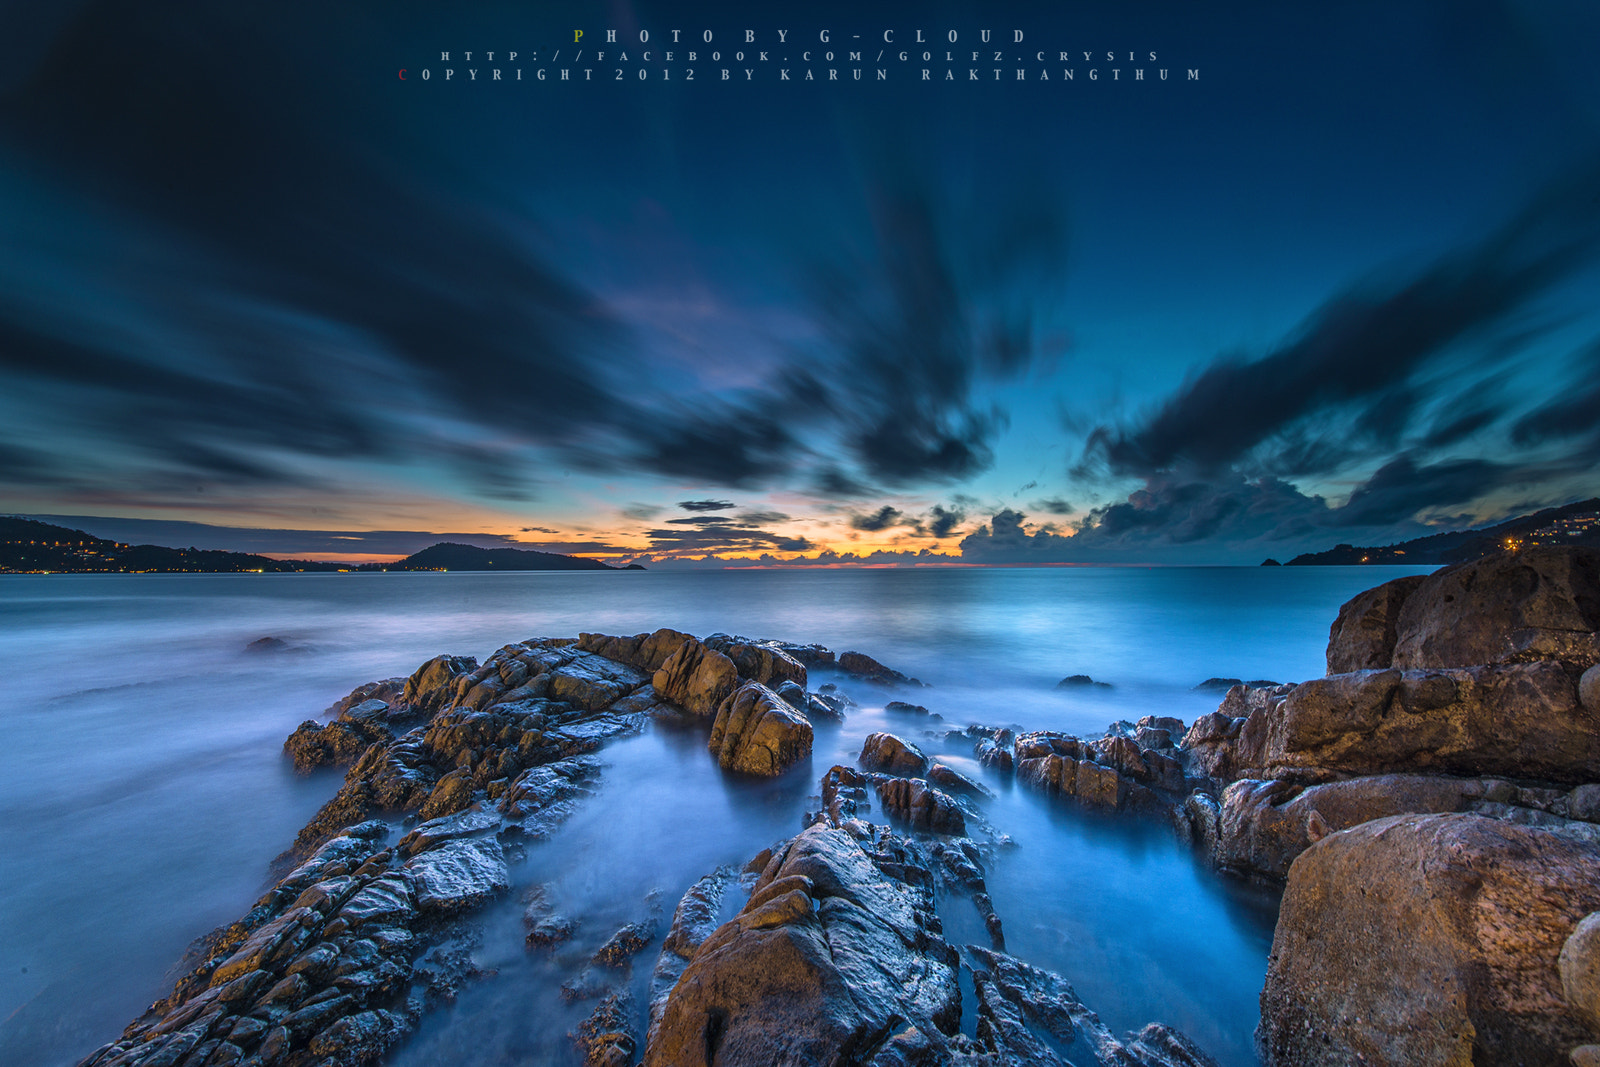 Photograph The Sea Cooling by Golfzx Cloud on 500px